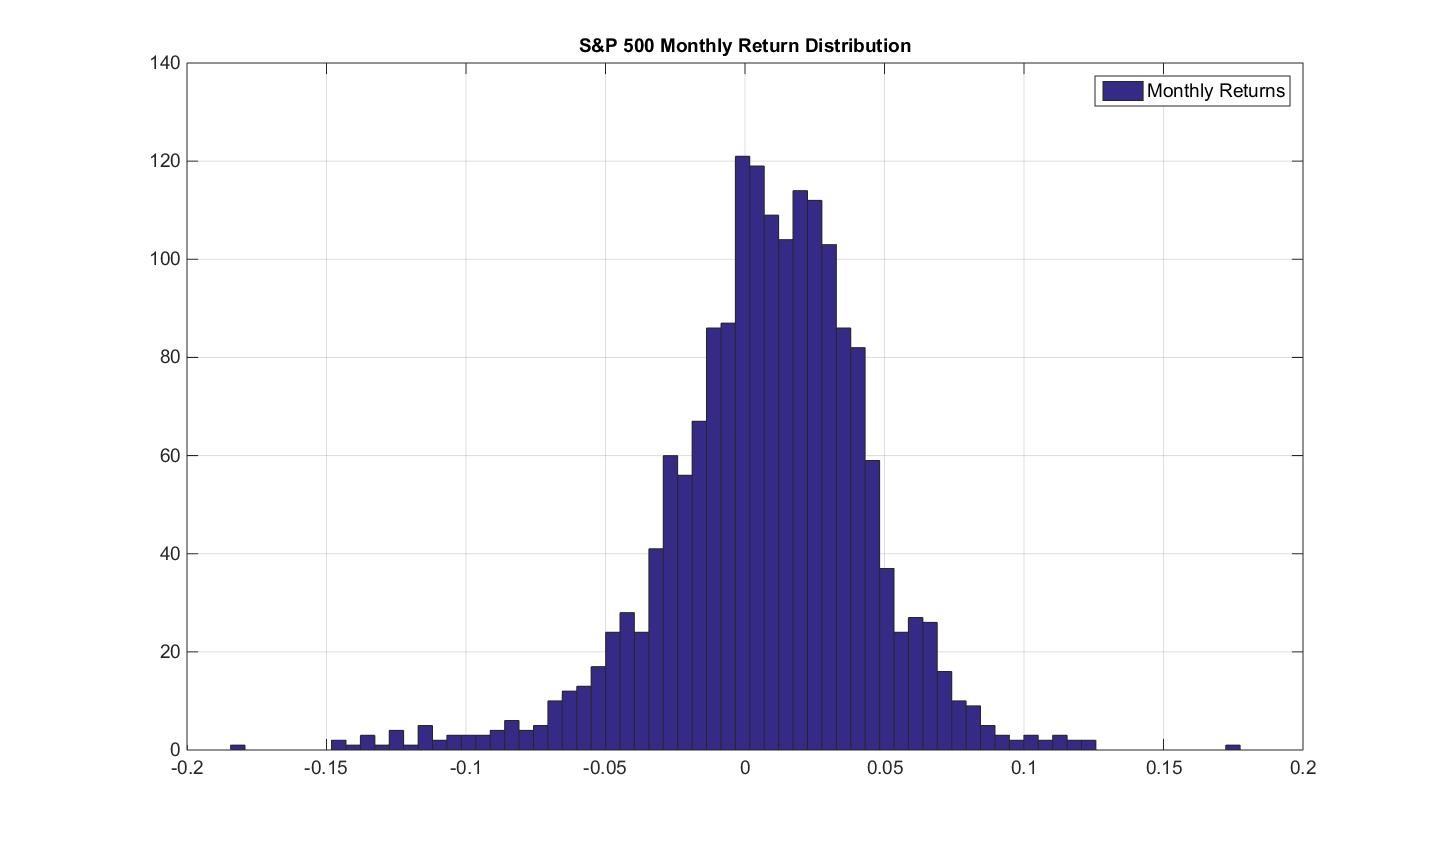 SP500 Return Distribution